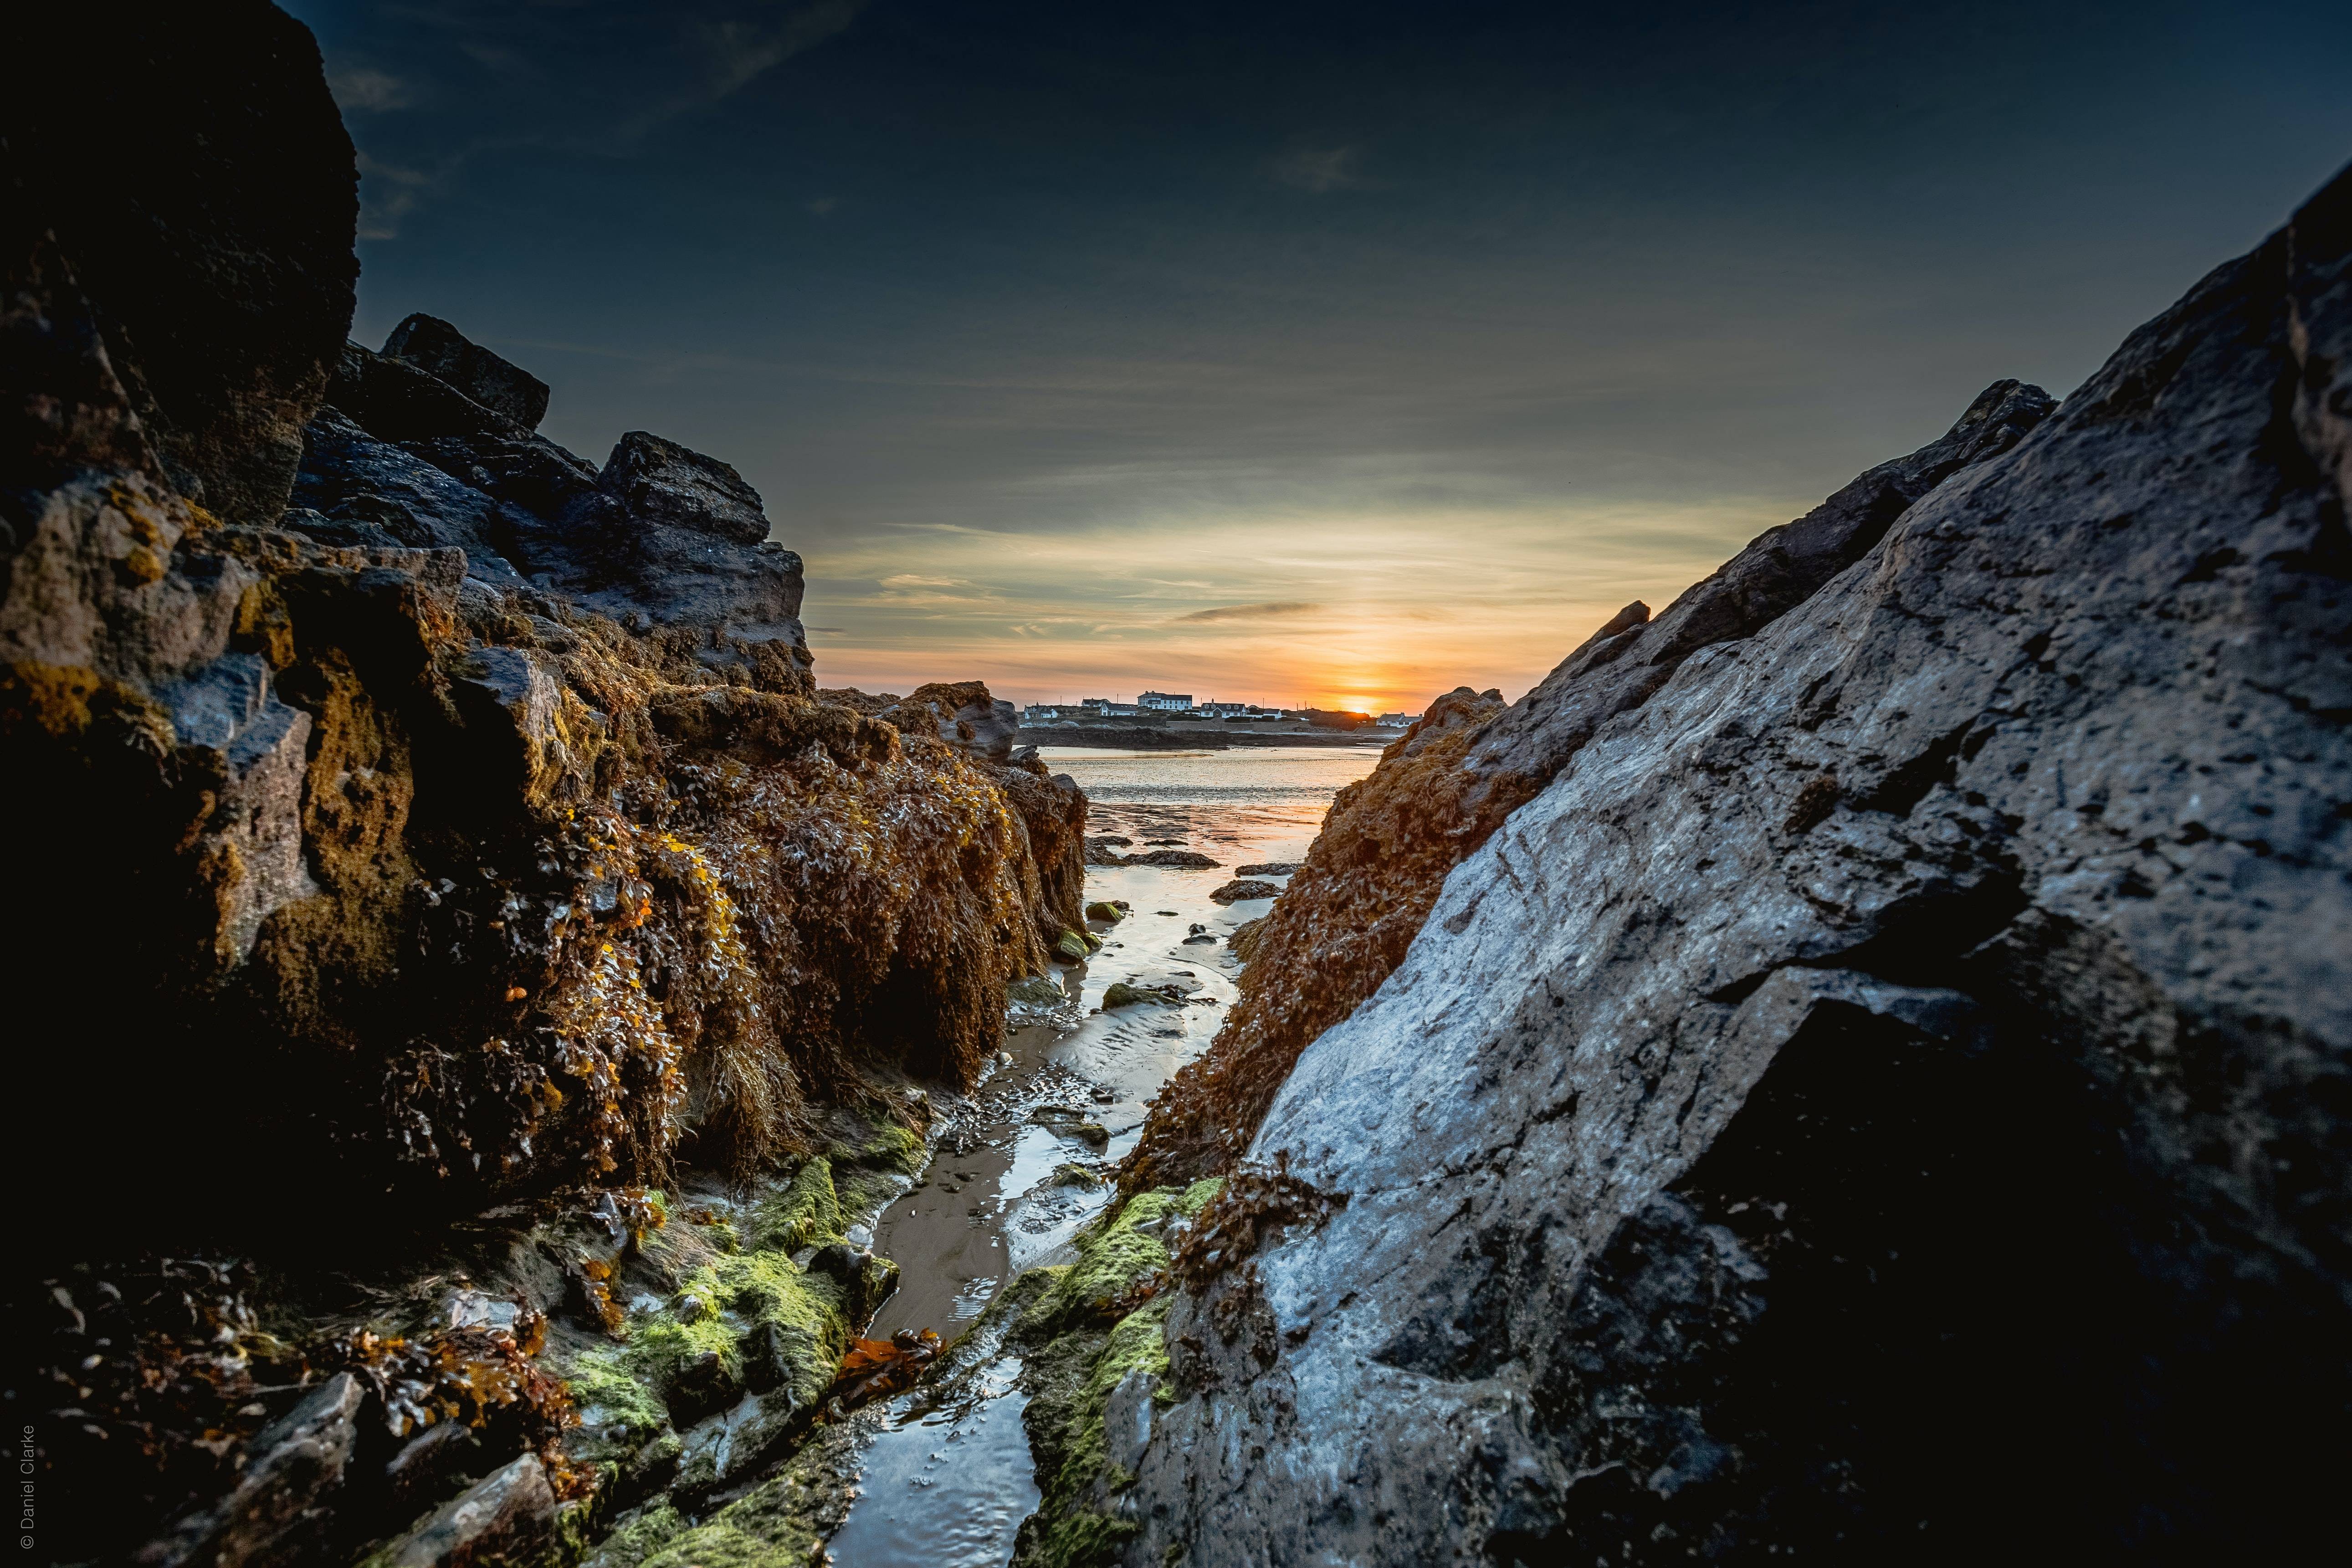 body of water between big rocks under gray and white sky at golden hour